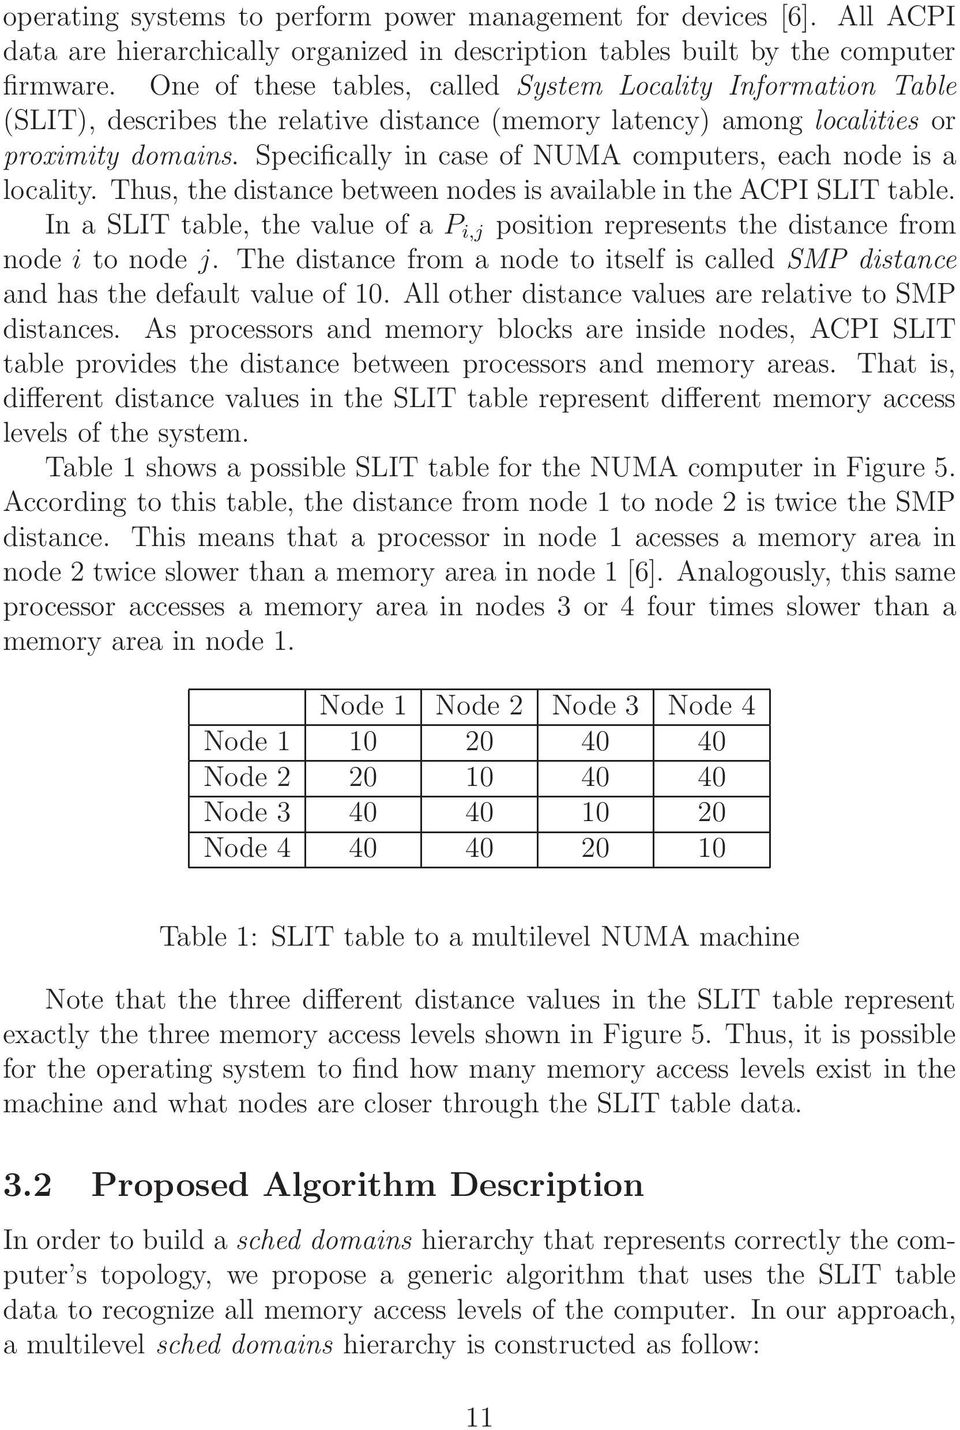 Specifically in case of NUMA computers, each node is a locality. Thus, the distance between nodes is available in the ACPI SLIT table.